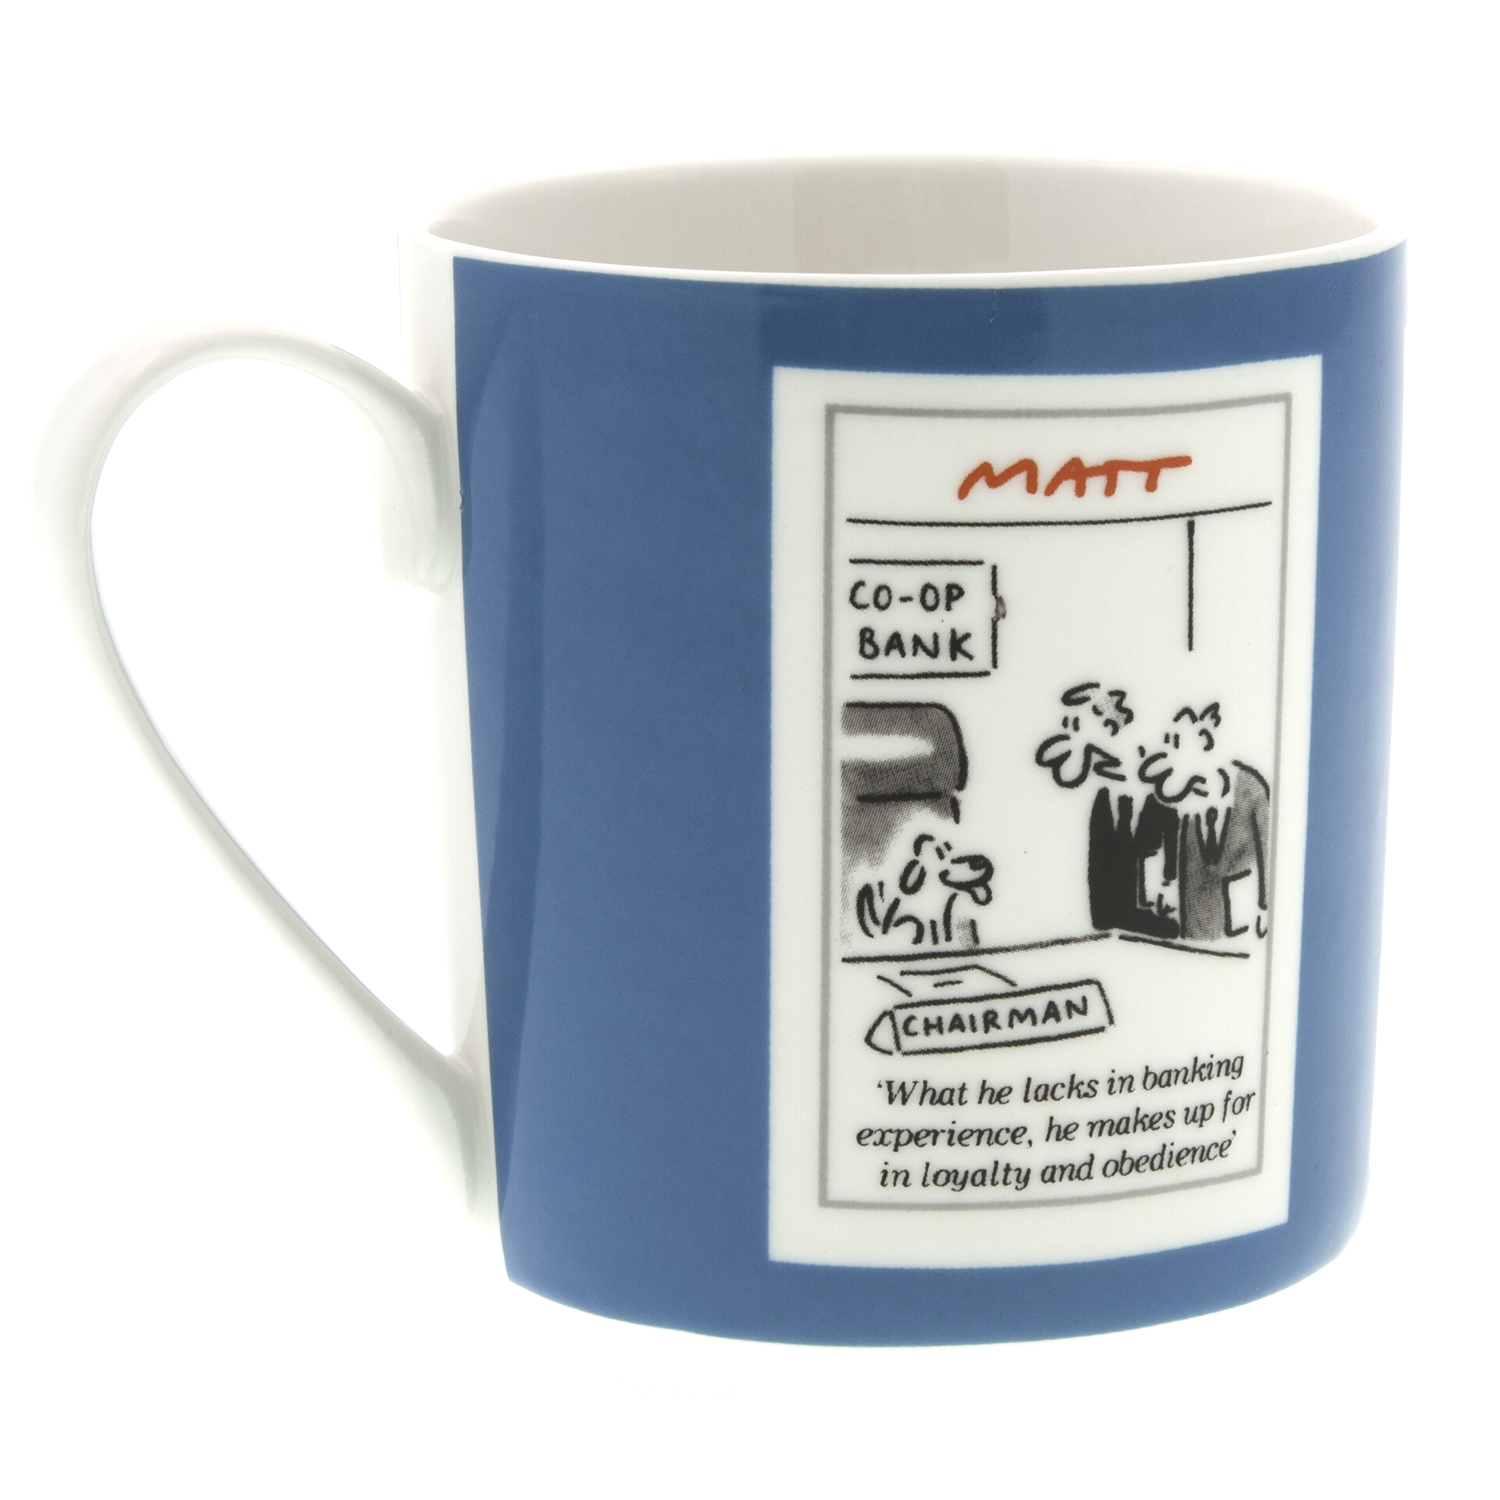 DogKrazy.Gifts - Matt, Man's Best Friend featuring 3 of Matts side-splitting dog cartoons, this 350ml bone china mug is Microwave and Dishwasher safe.  Matt produces cartoons for the Daily Telegraph, Sunday Telegraph and Telegraph.